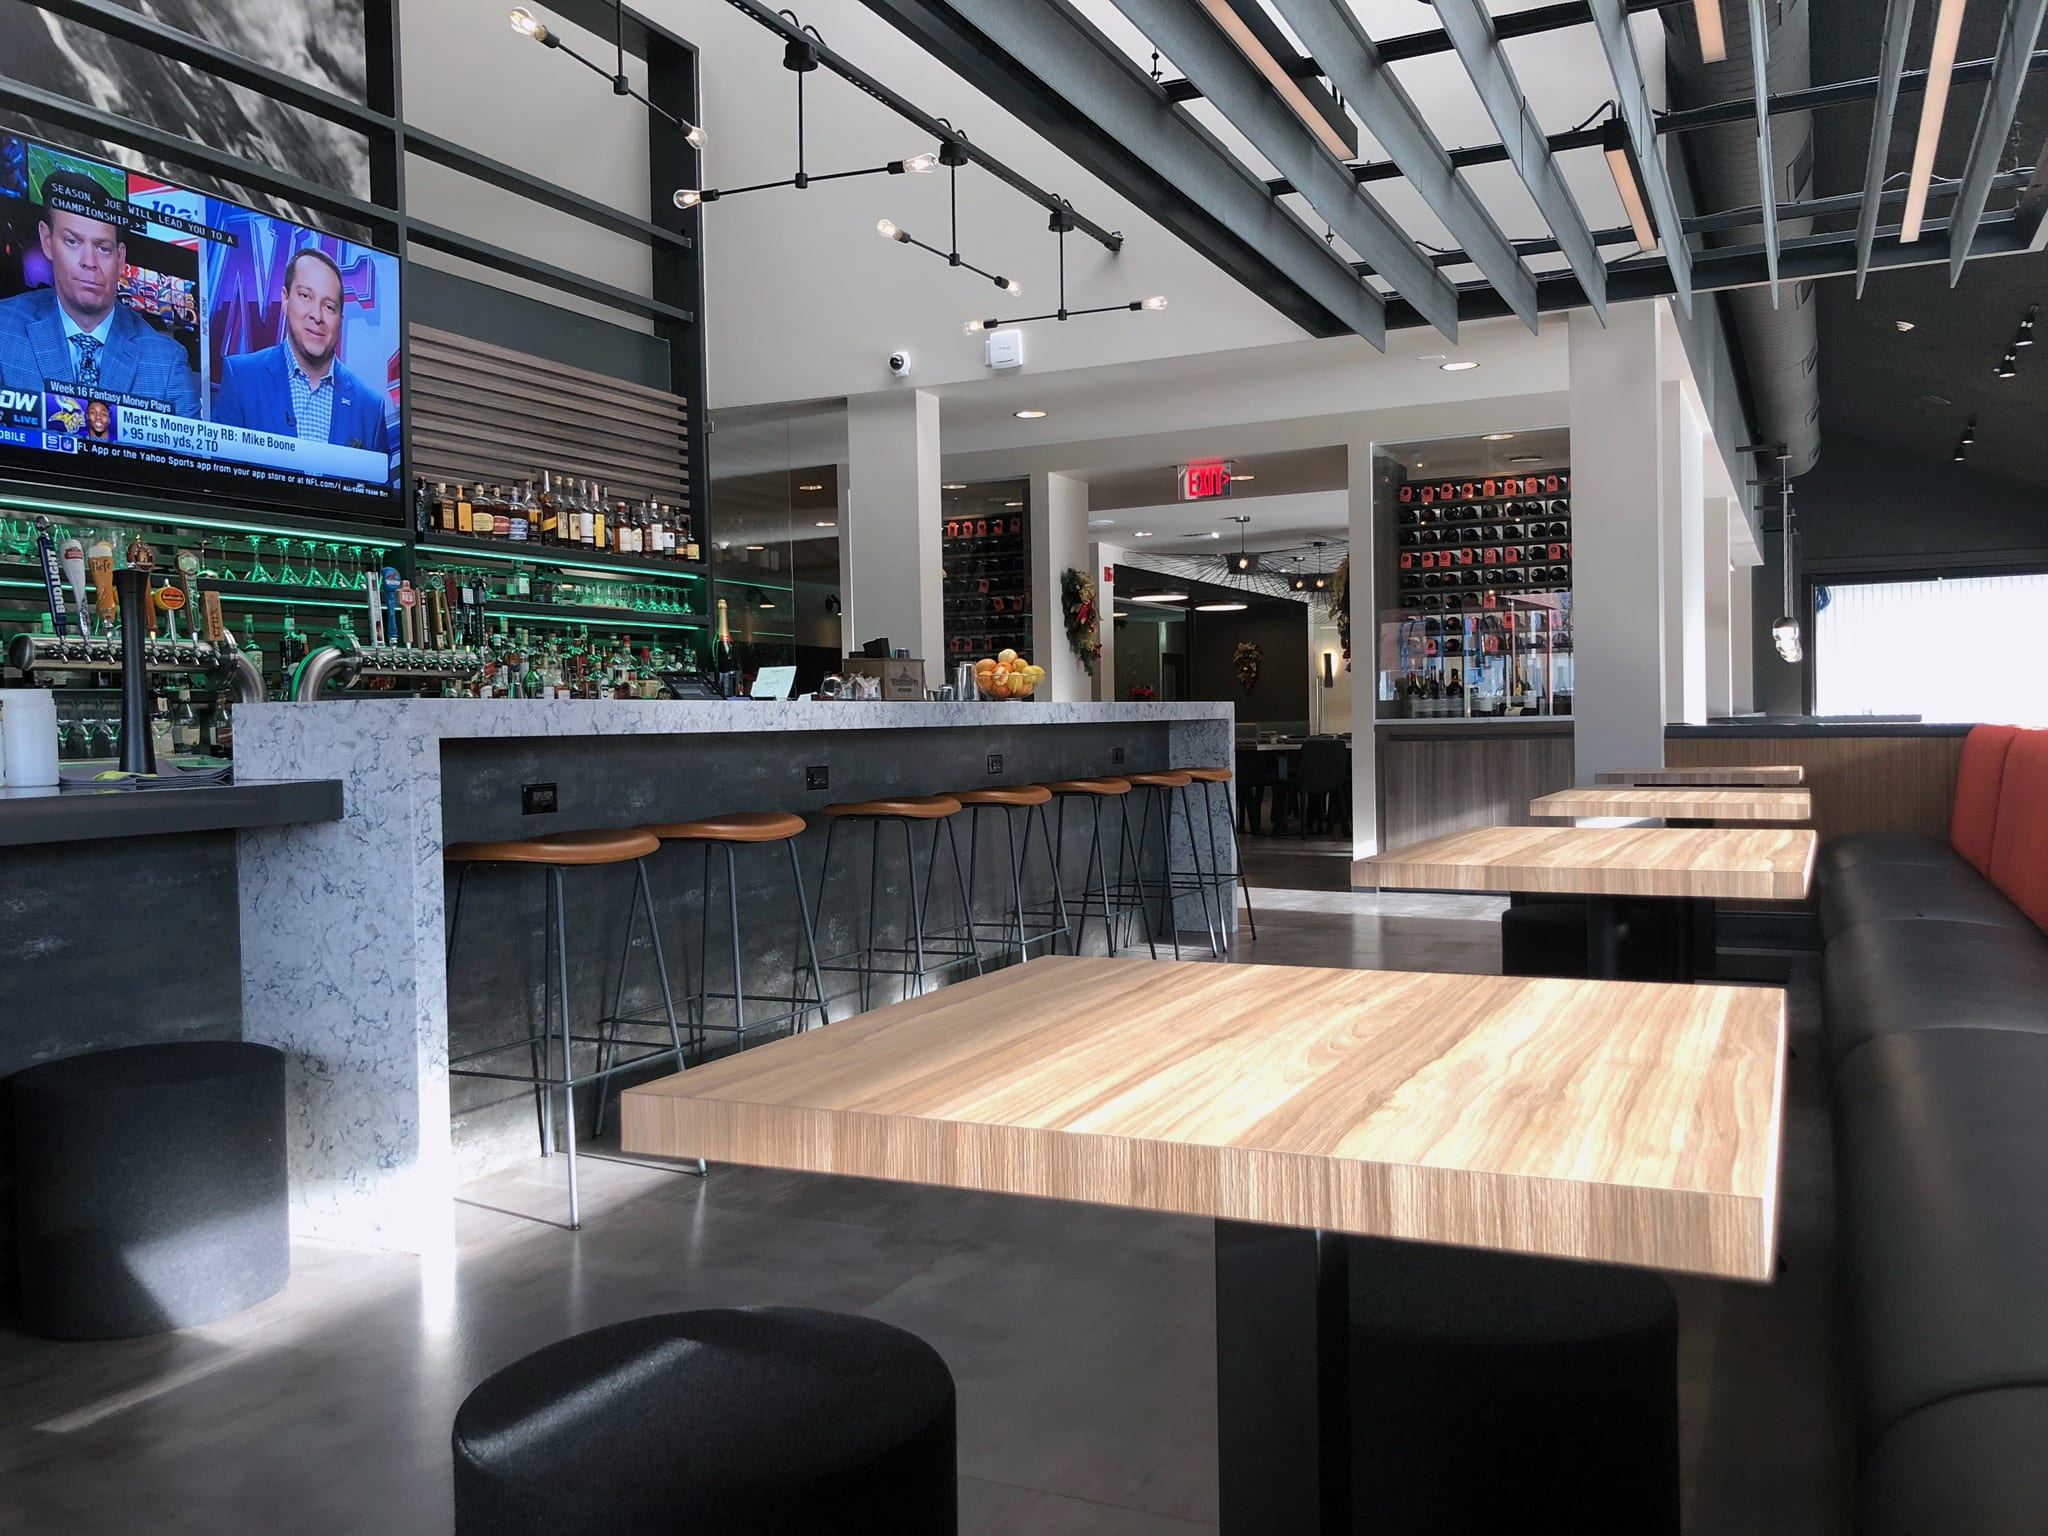 Osprey Restaurant & Bar is the new iteration of the former Ripples Riverside Grill, now open at the Ruby River Hotel